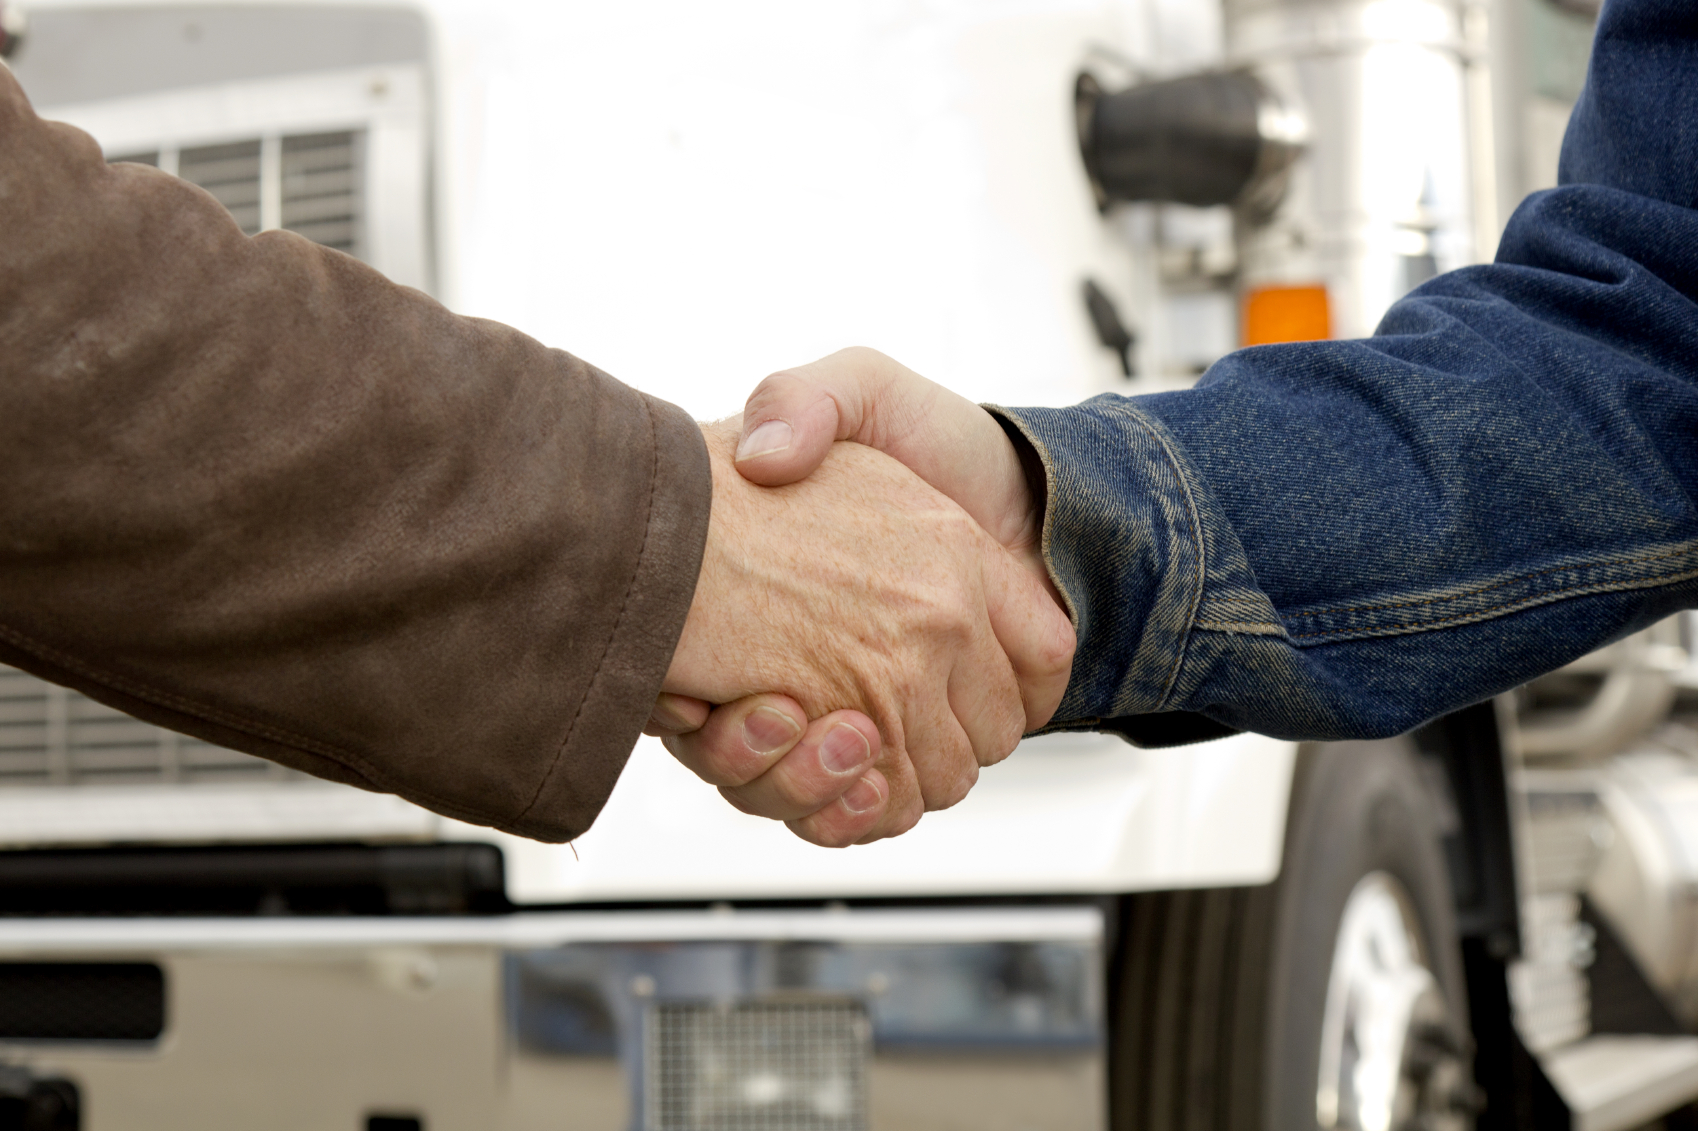 5 Key Steps to Working with Third Party Fleet Maintenance Providers